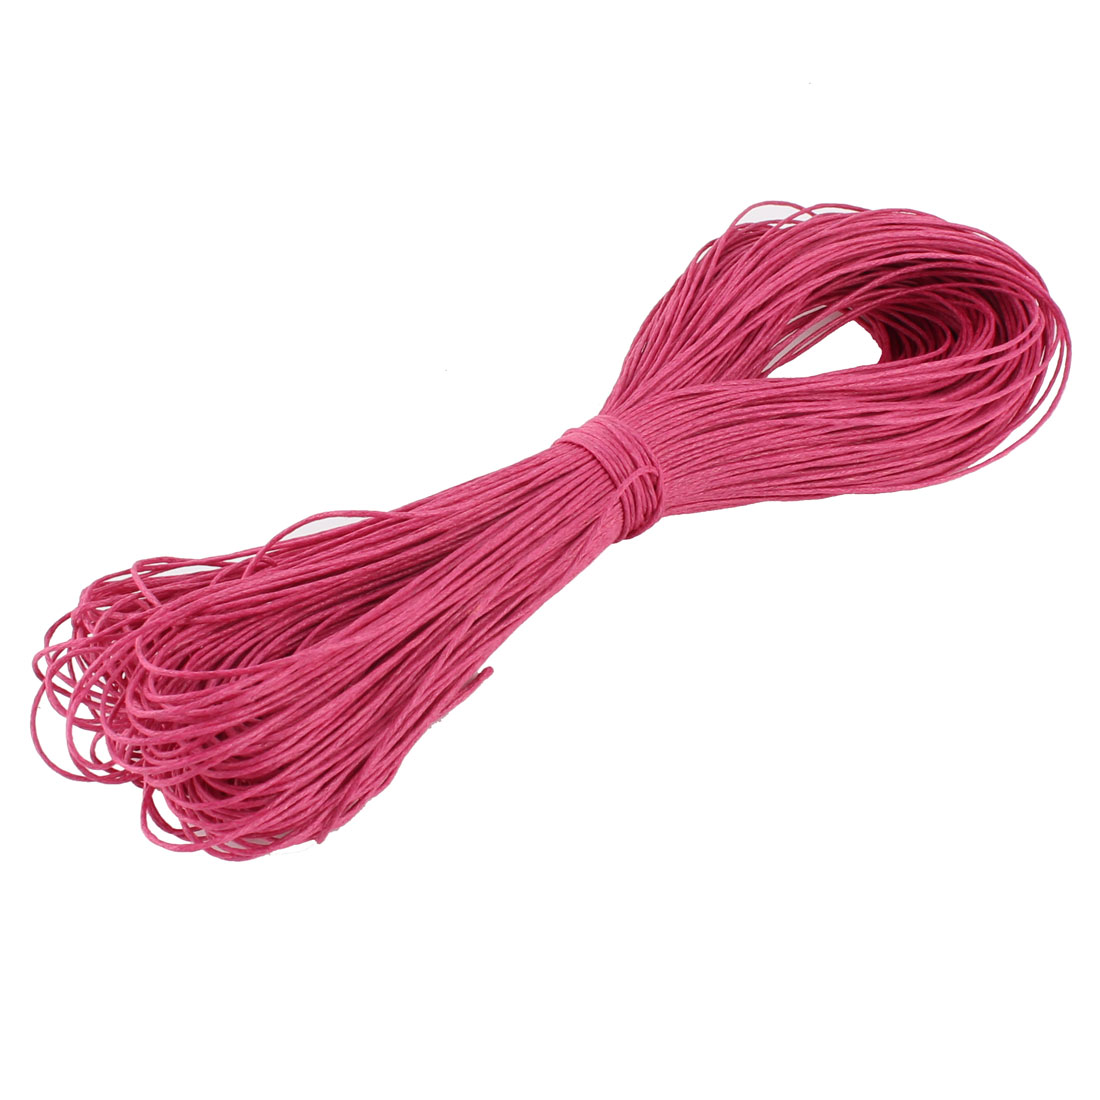 Waxed Cotton String Beading Thread Cord Fuchsia 1mm 87.5 Yard for DIY Bracelet Necklace